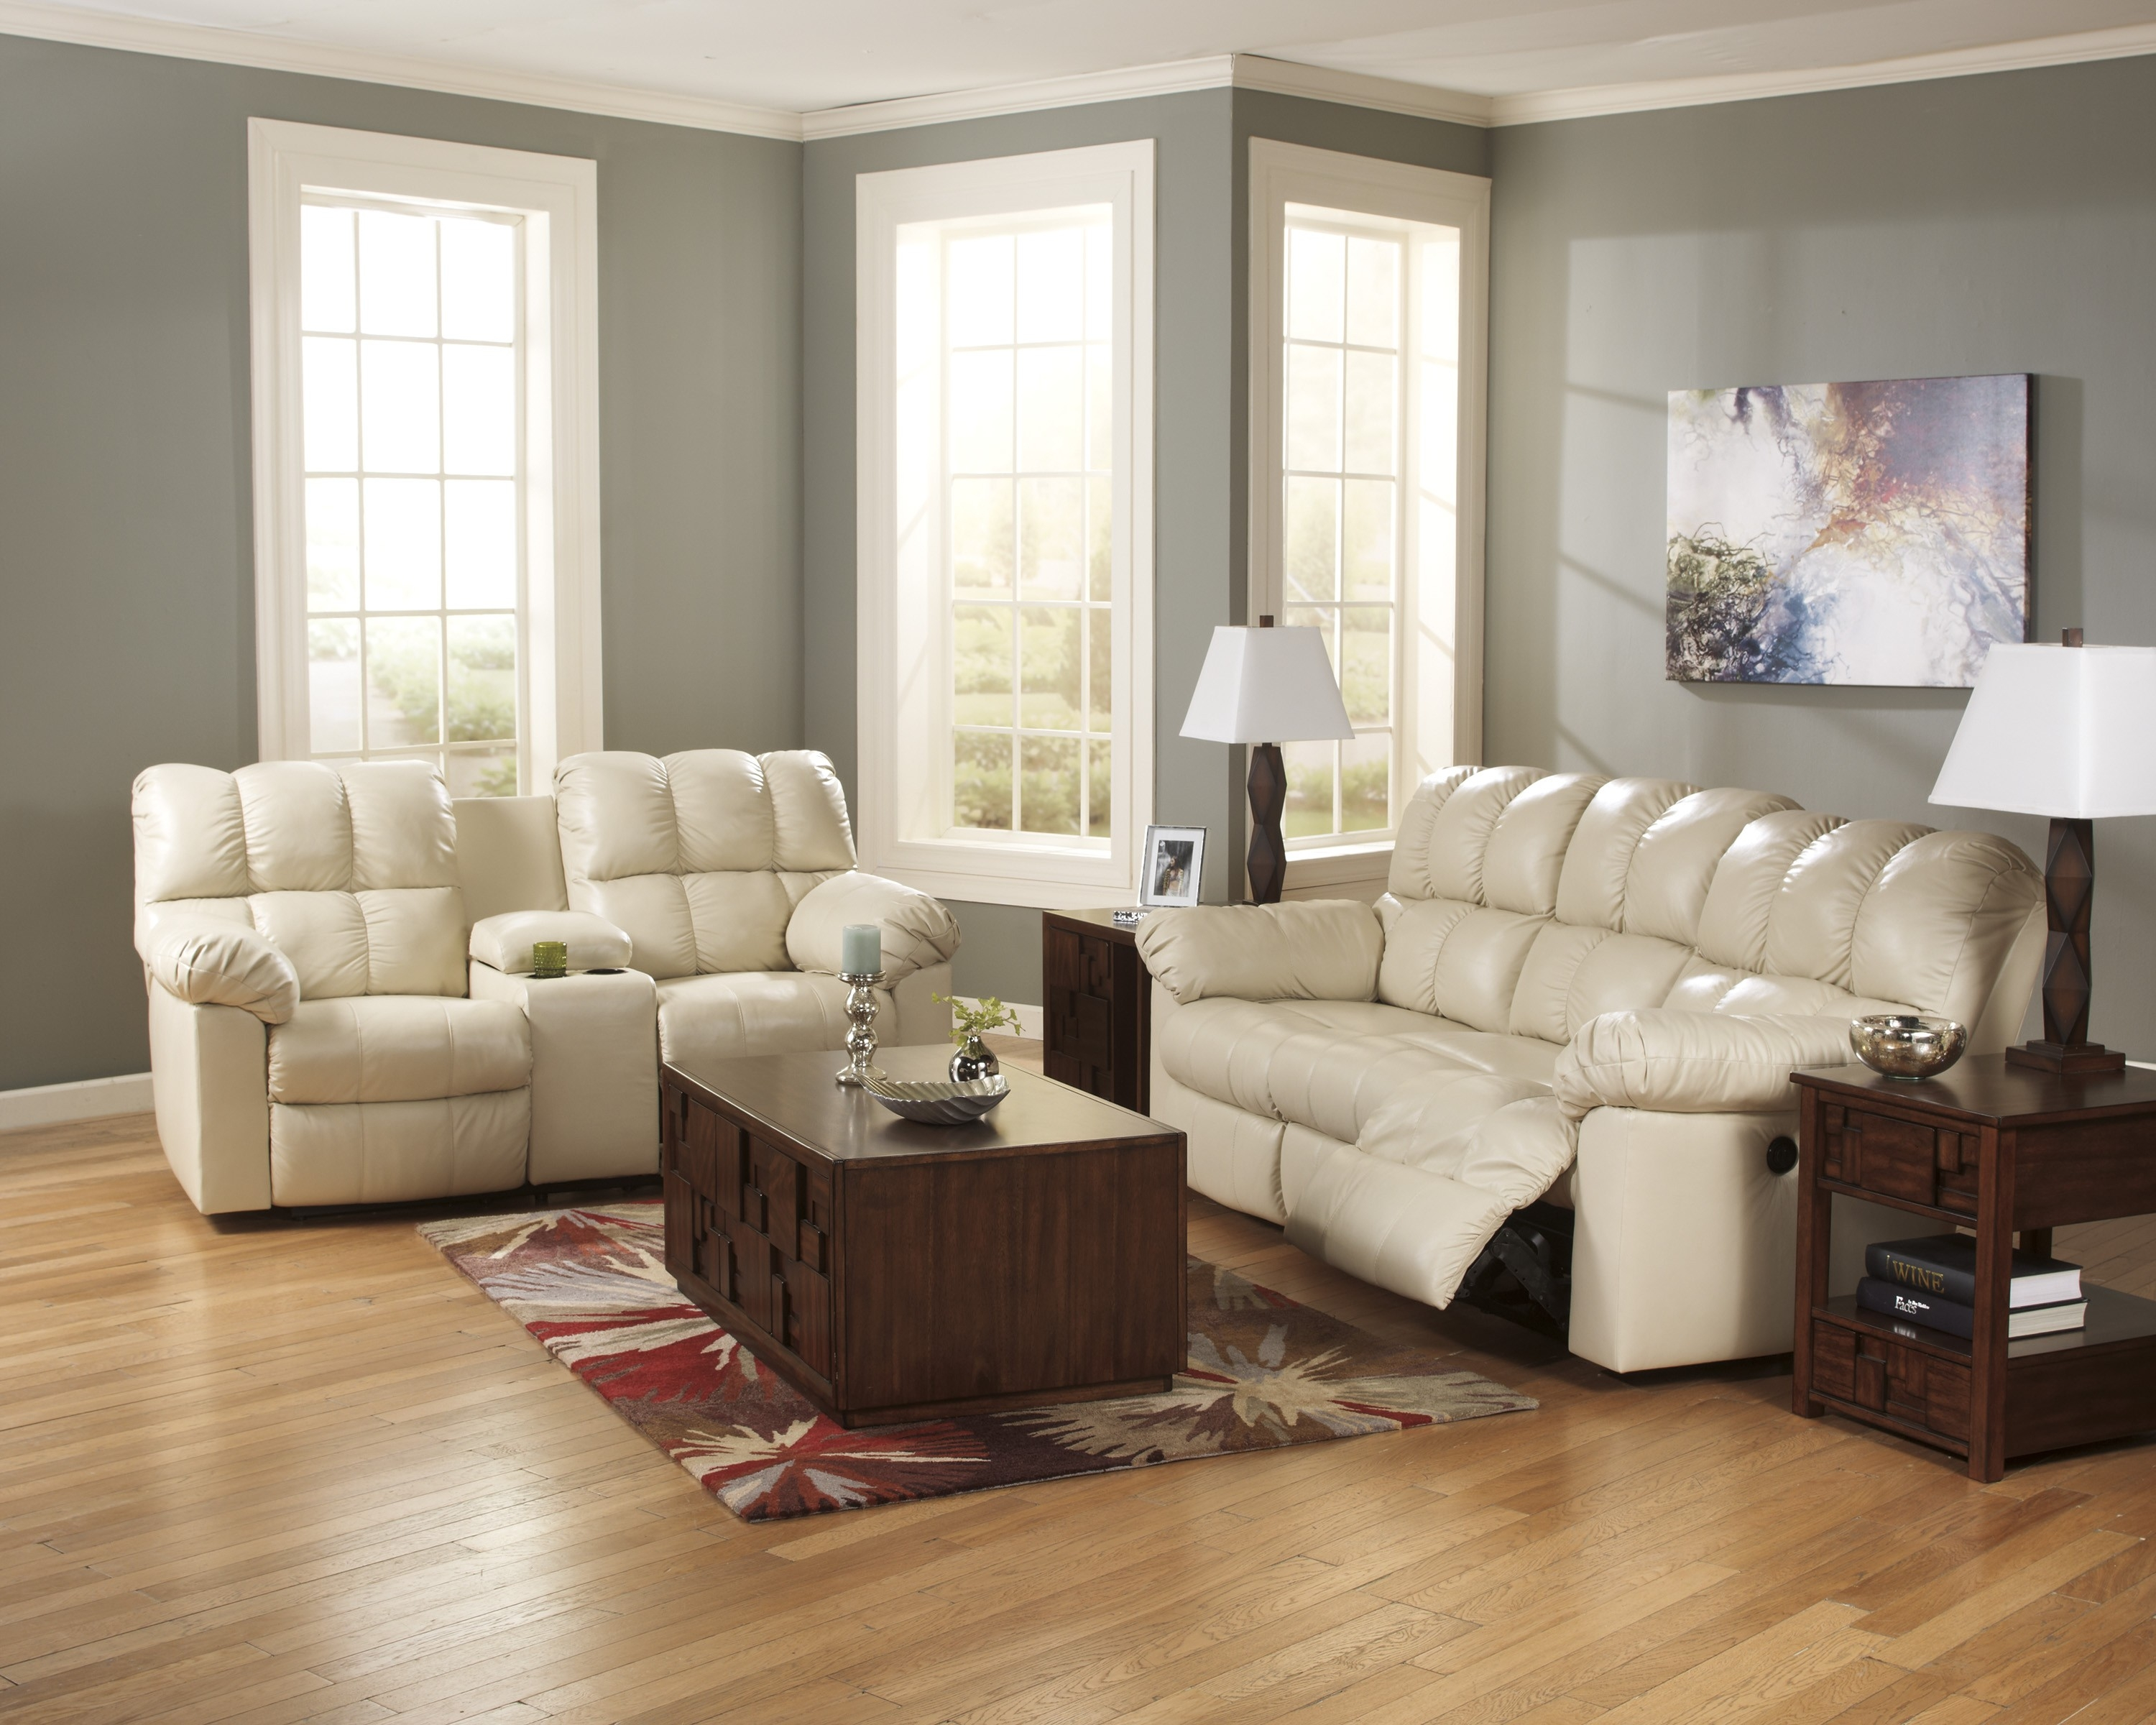 16 Cream Colored Leather Sofa Auto Auctions With Cream Colored Sofas (View 3 of 15)